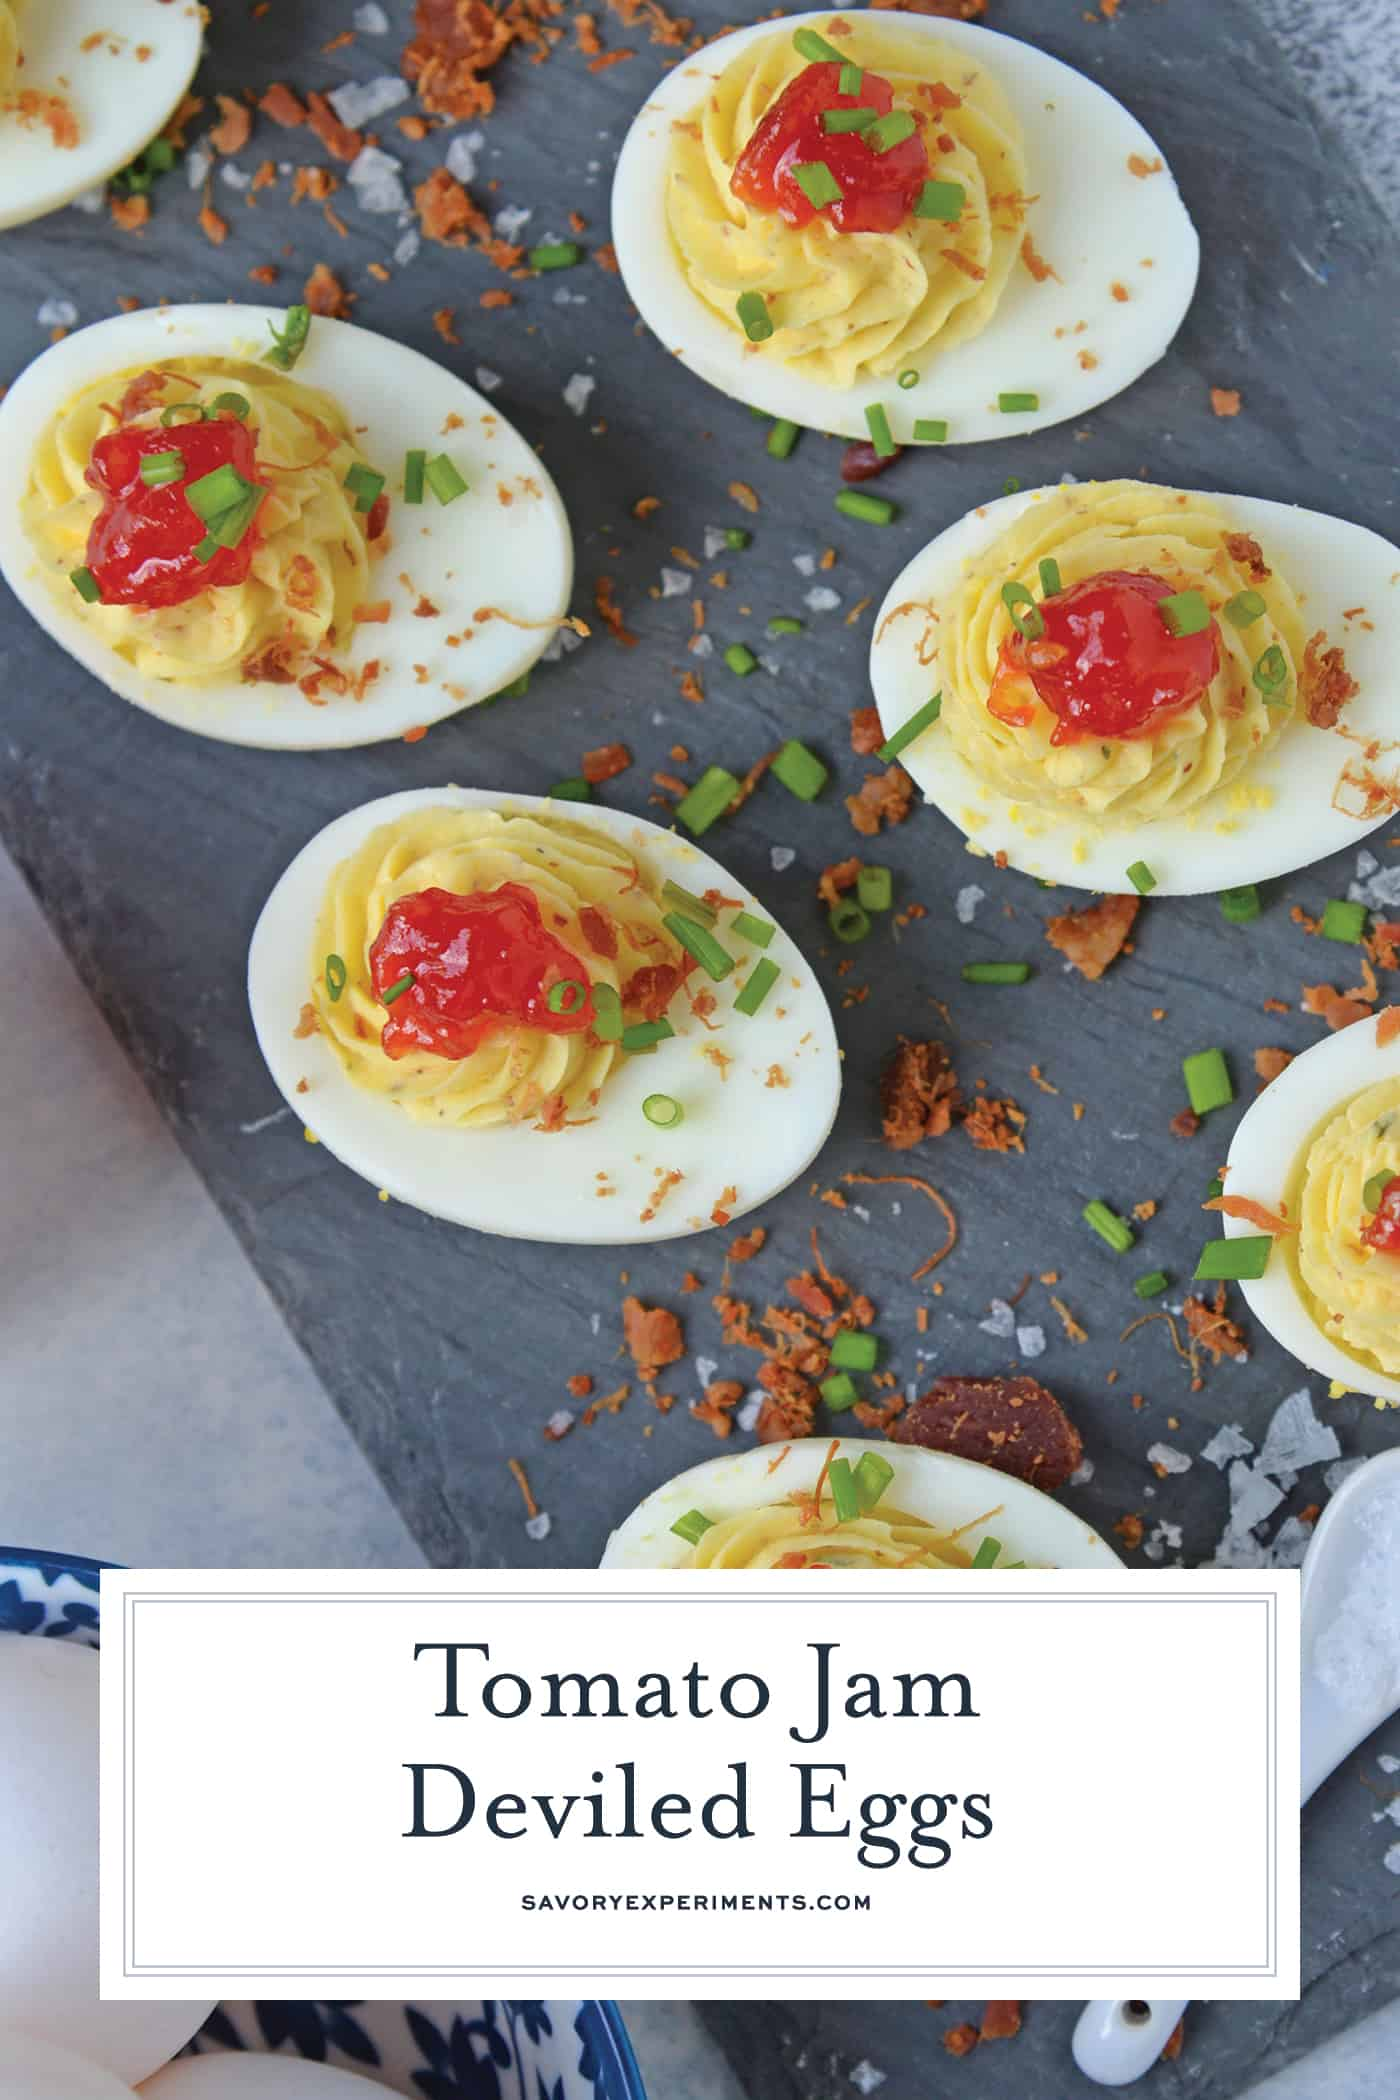 Tomato Jam Deviled Eggs use sweet tomato jam with tangy horseradish in a devilishly creamy deviled egg filling. Top with chives and serve! #deviledeggs www.savoryexperiments.com